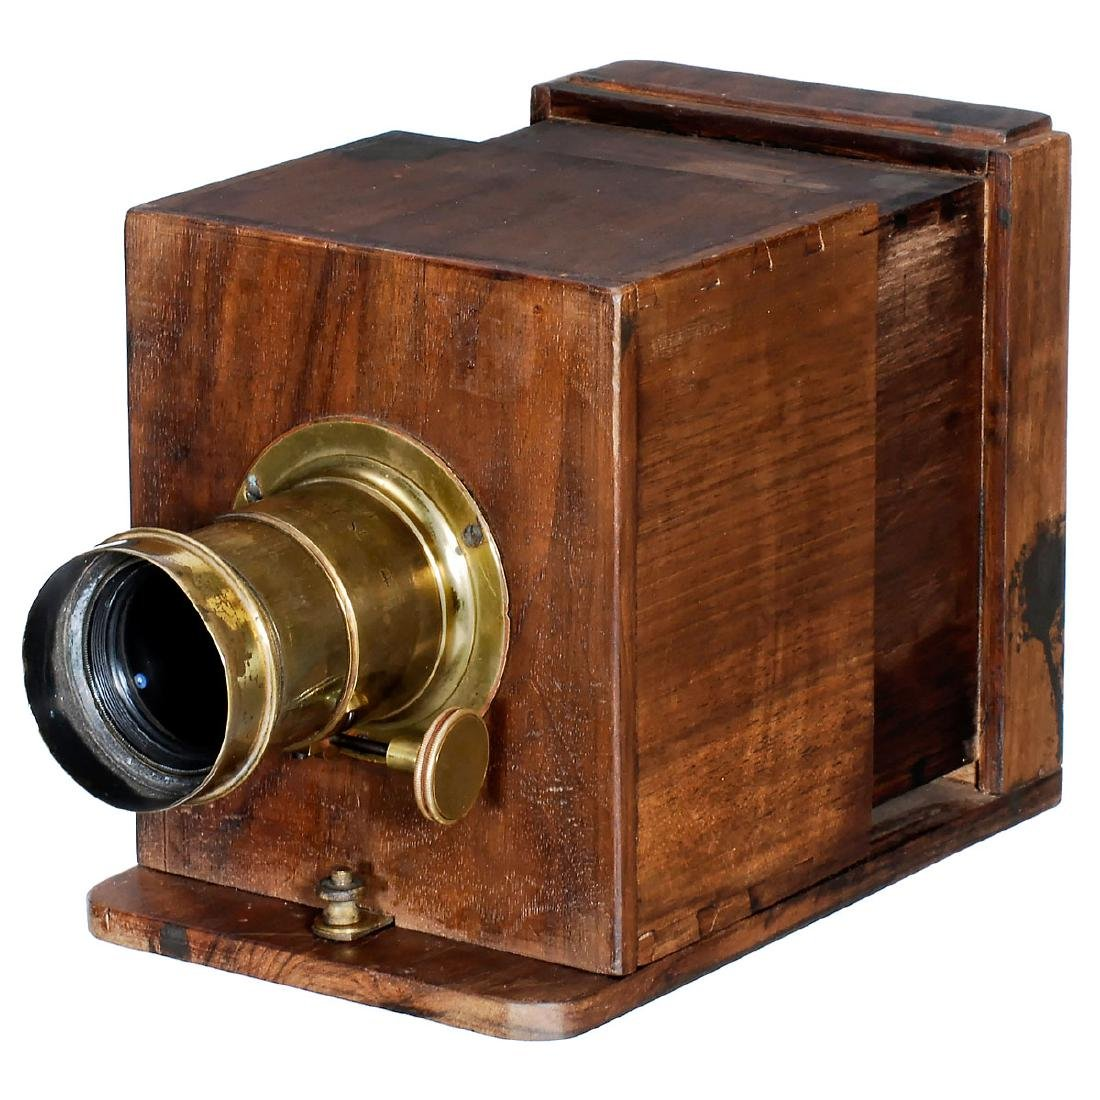 Wet-Plate Sliding Box Camera with Jamin and Darlot